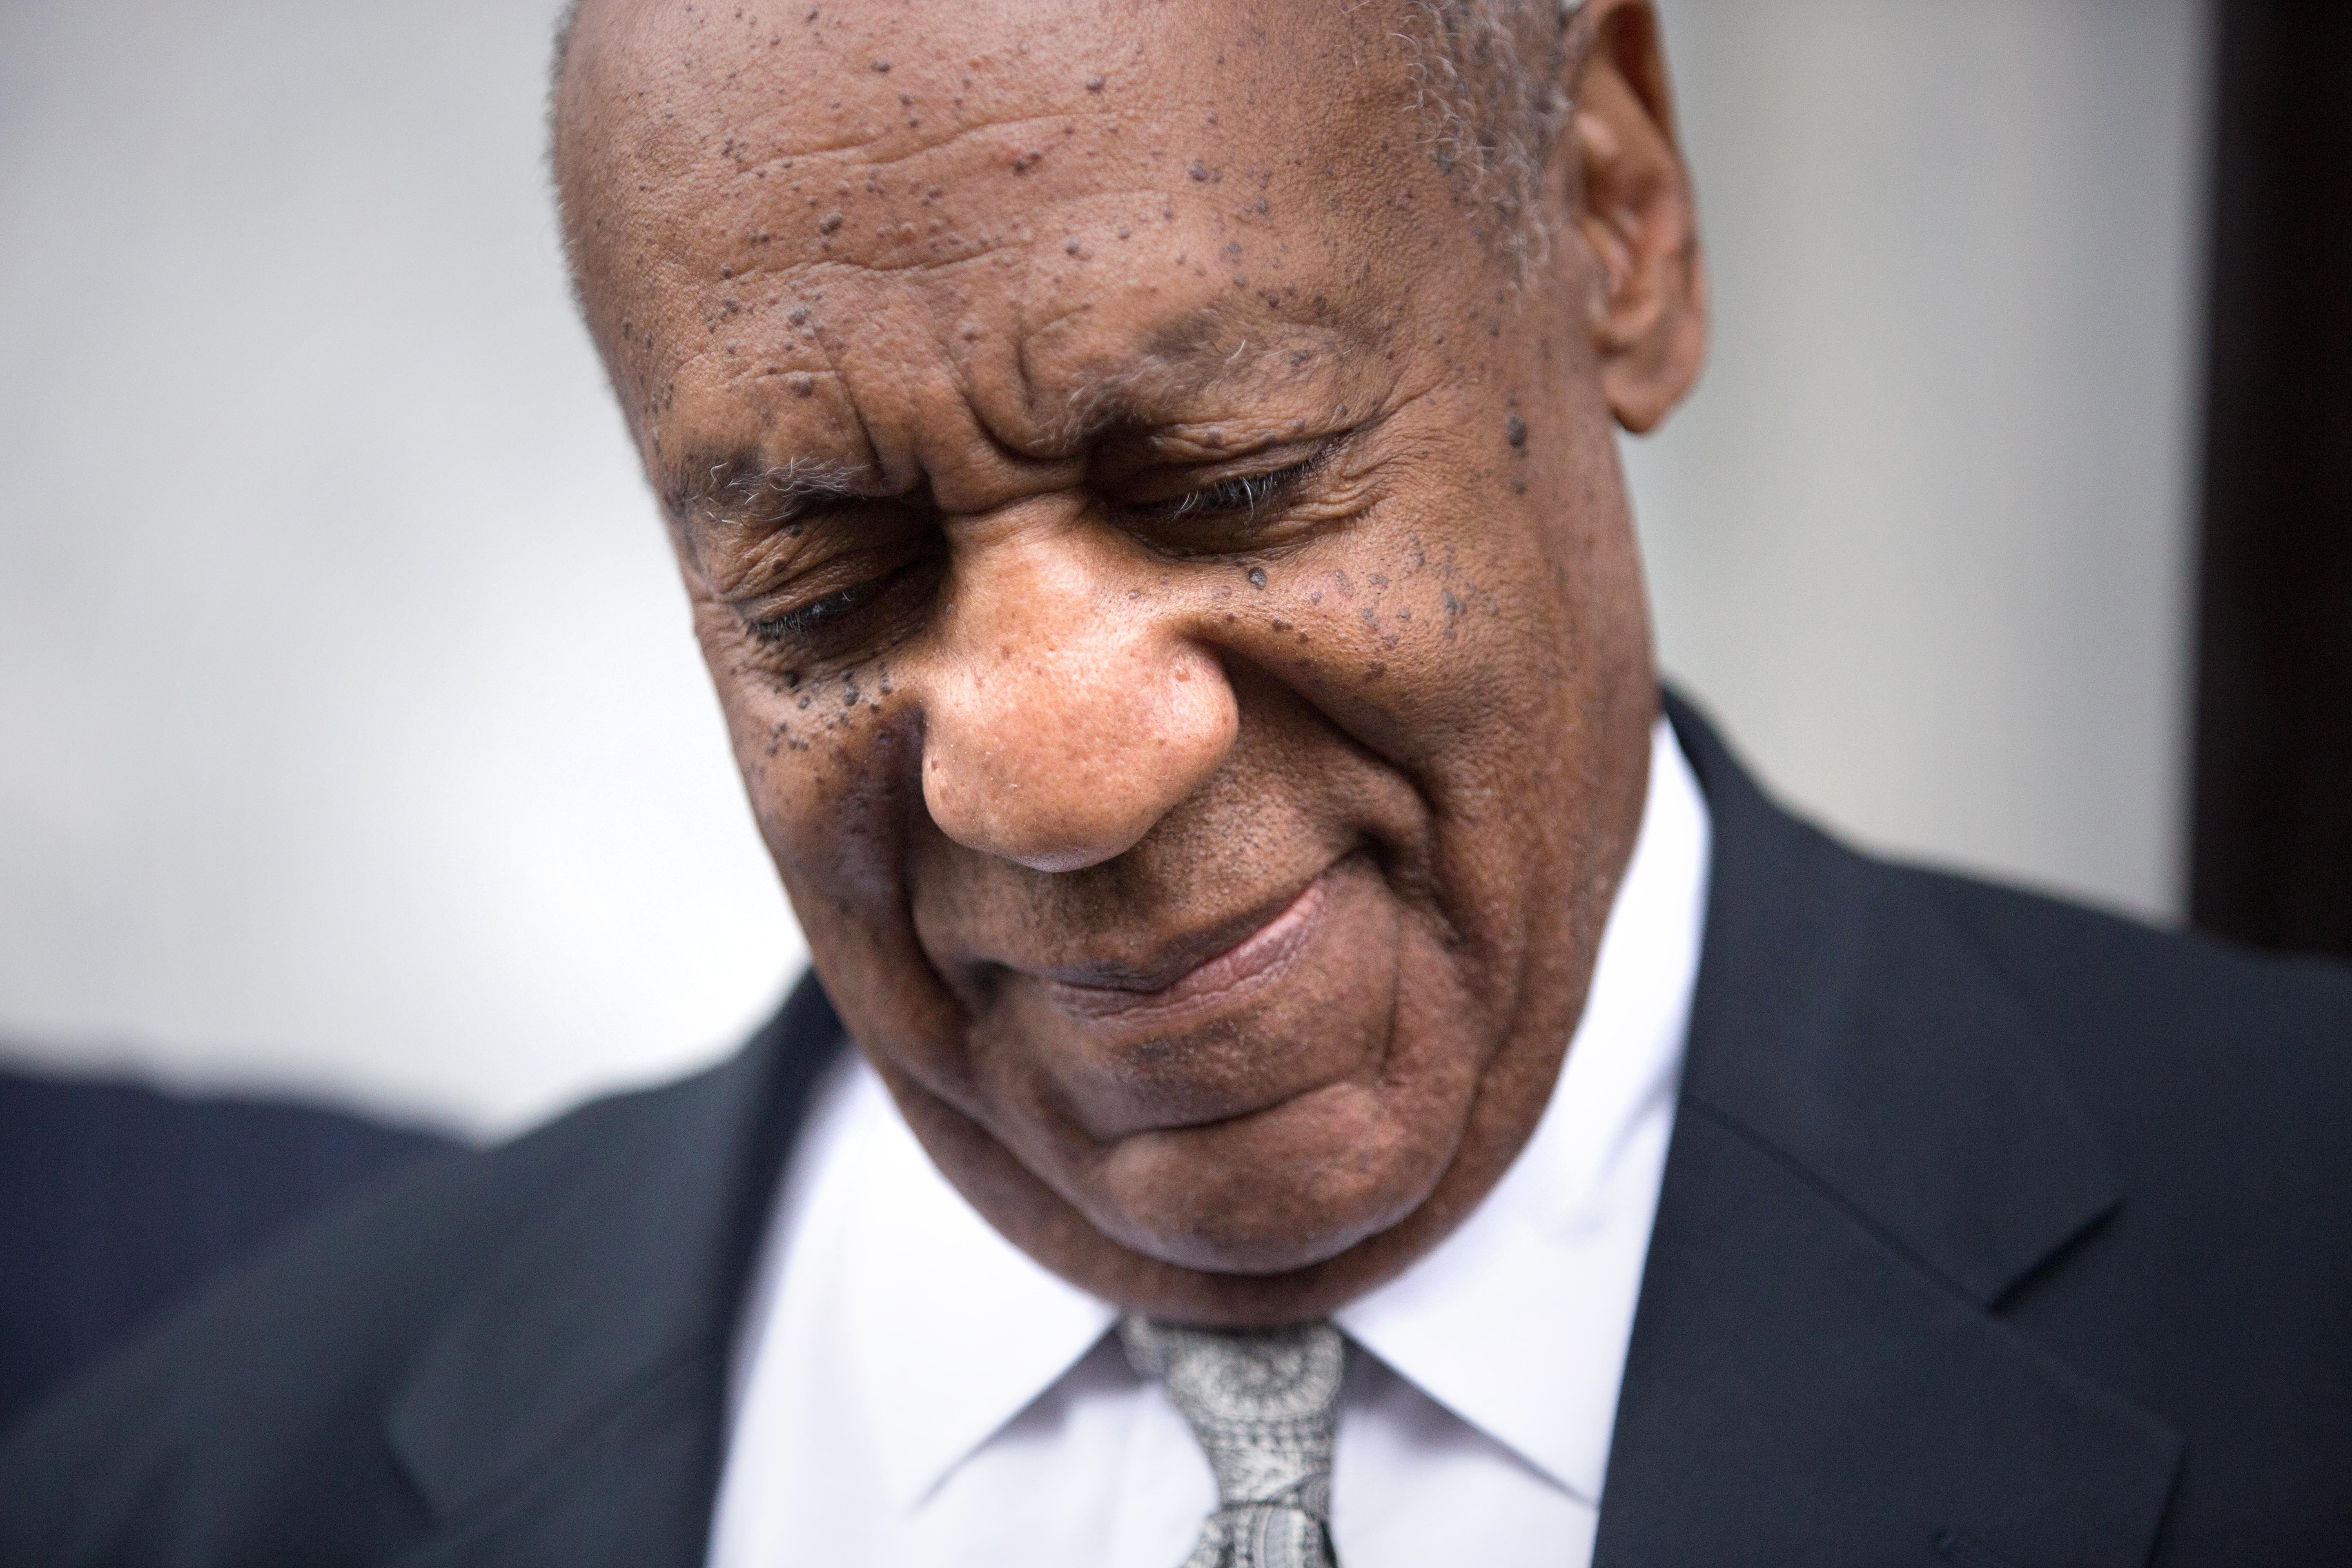 Juror Says Bill Cosby 'Already Paid His Price'